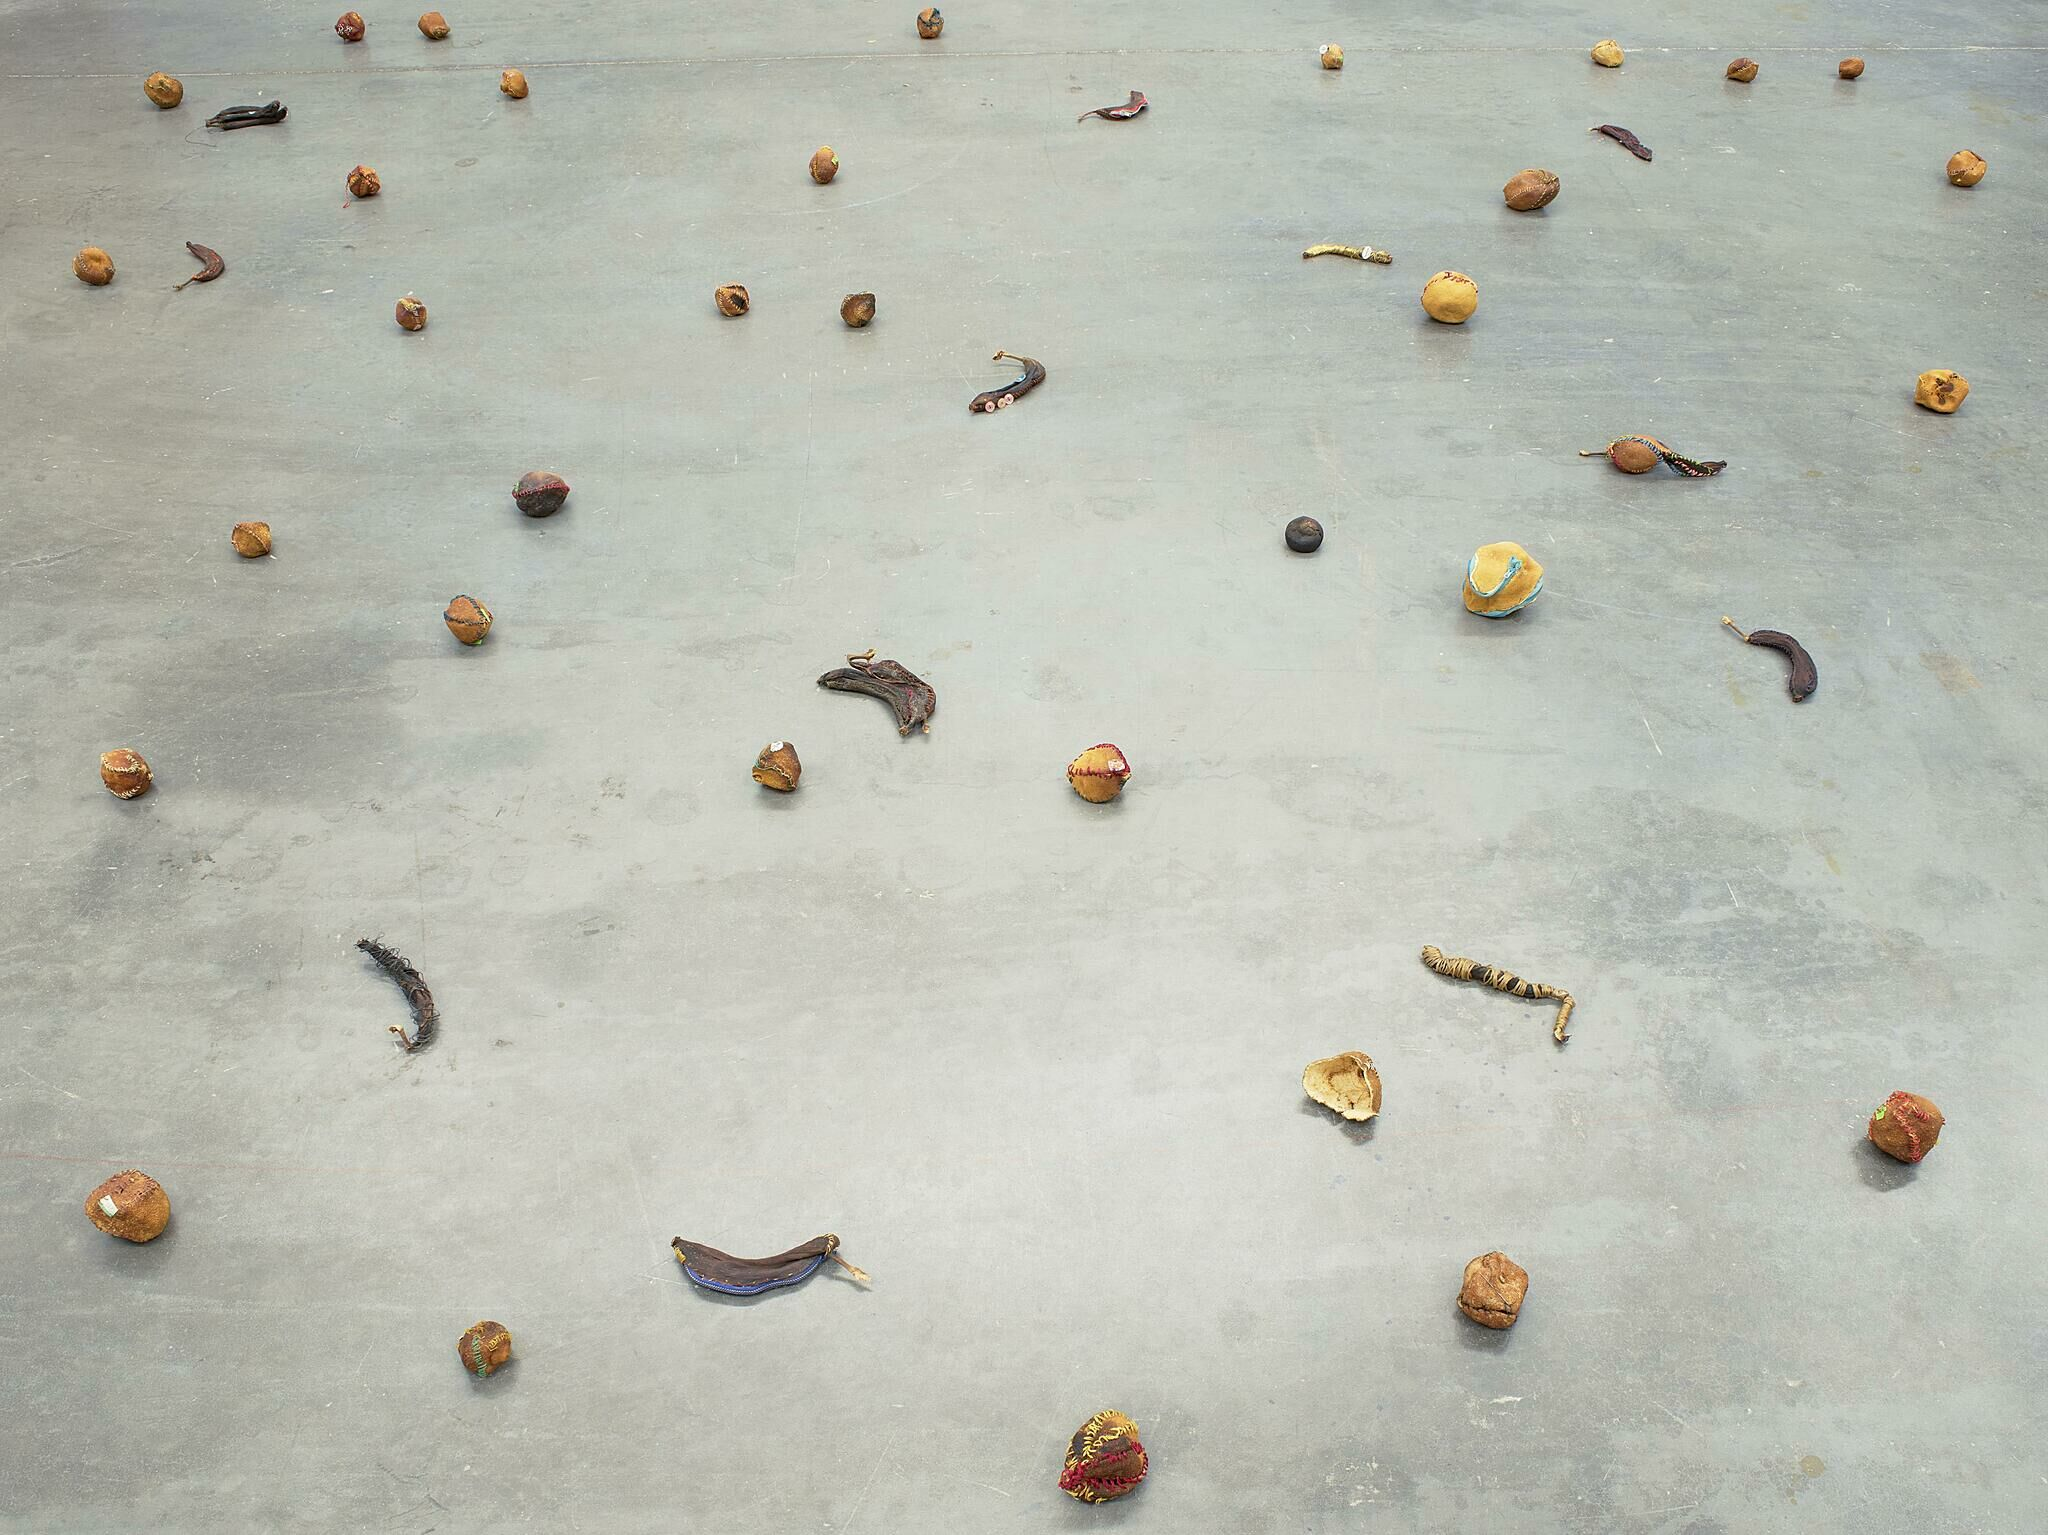 Rotting fruit on a floor.